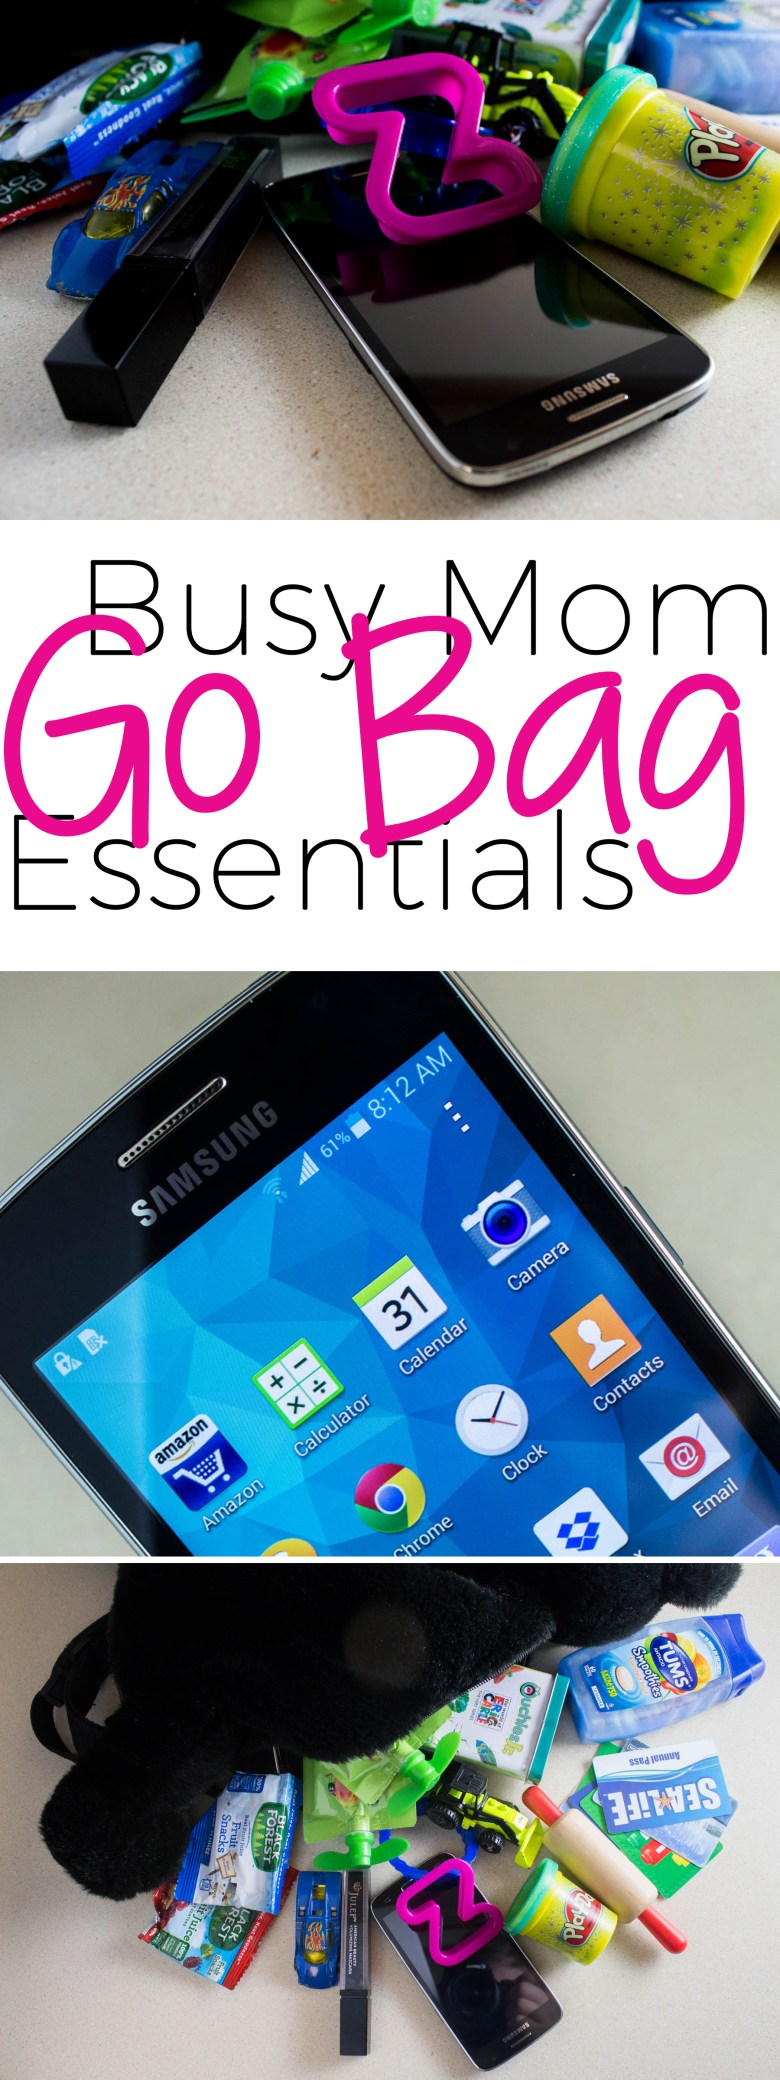 As a busy mom, there are some things you just shouldn't leave home without! Here are my busy mom bag essentials that I'd never think to head out without-- read why they made the list! #ChangingPrepaid #Ad